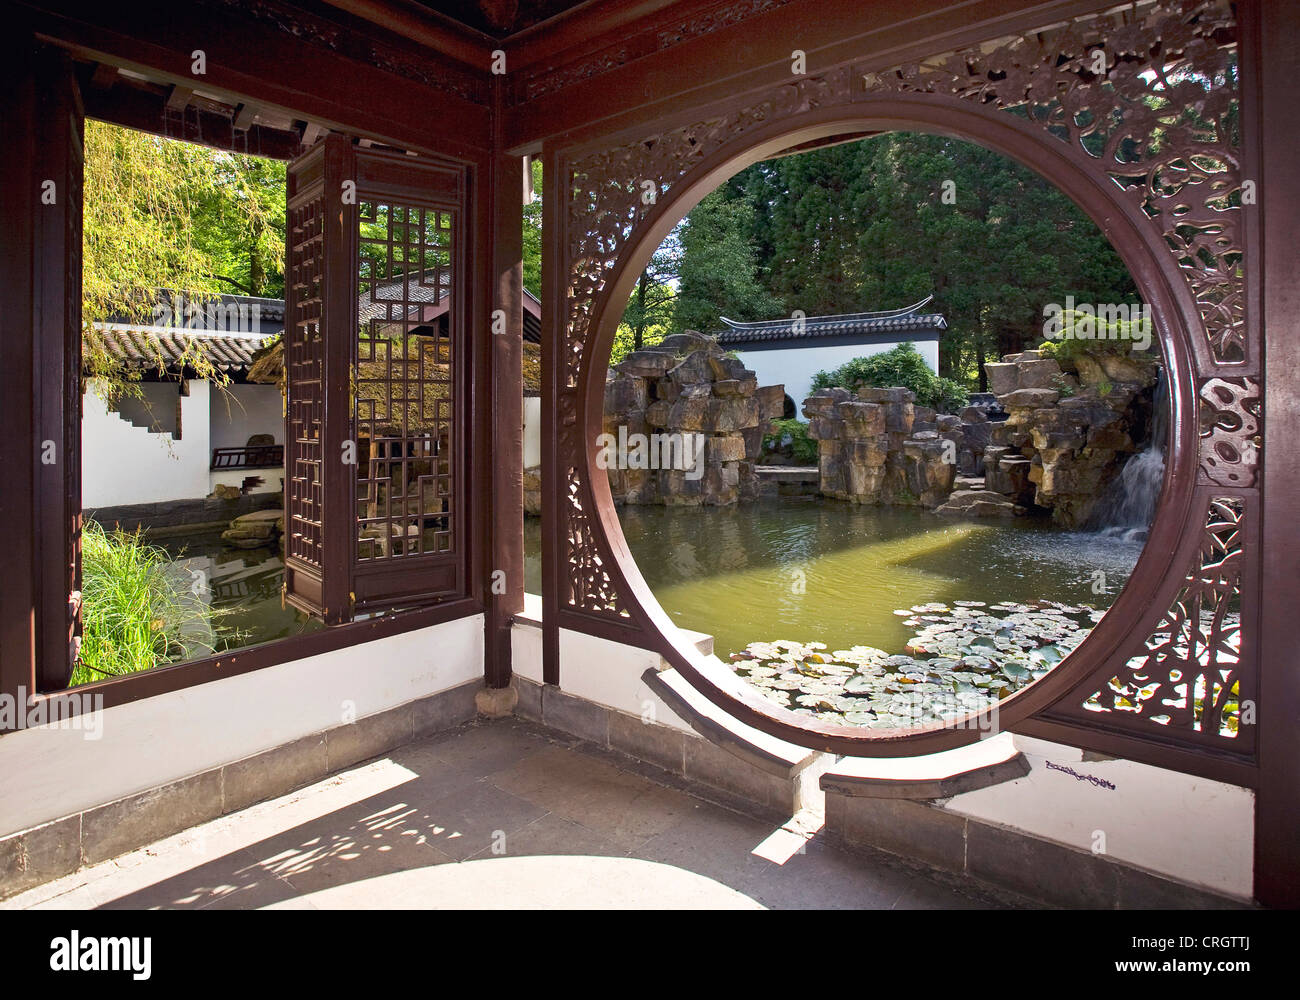 Chinese garden bochum germany ruhr stock photos chinese for Chinese in the area